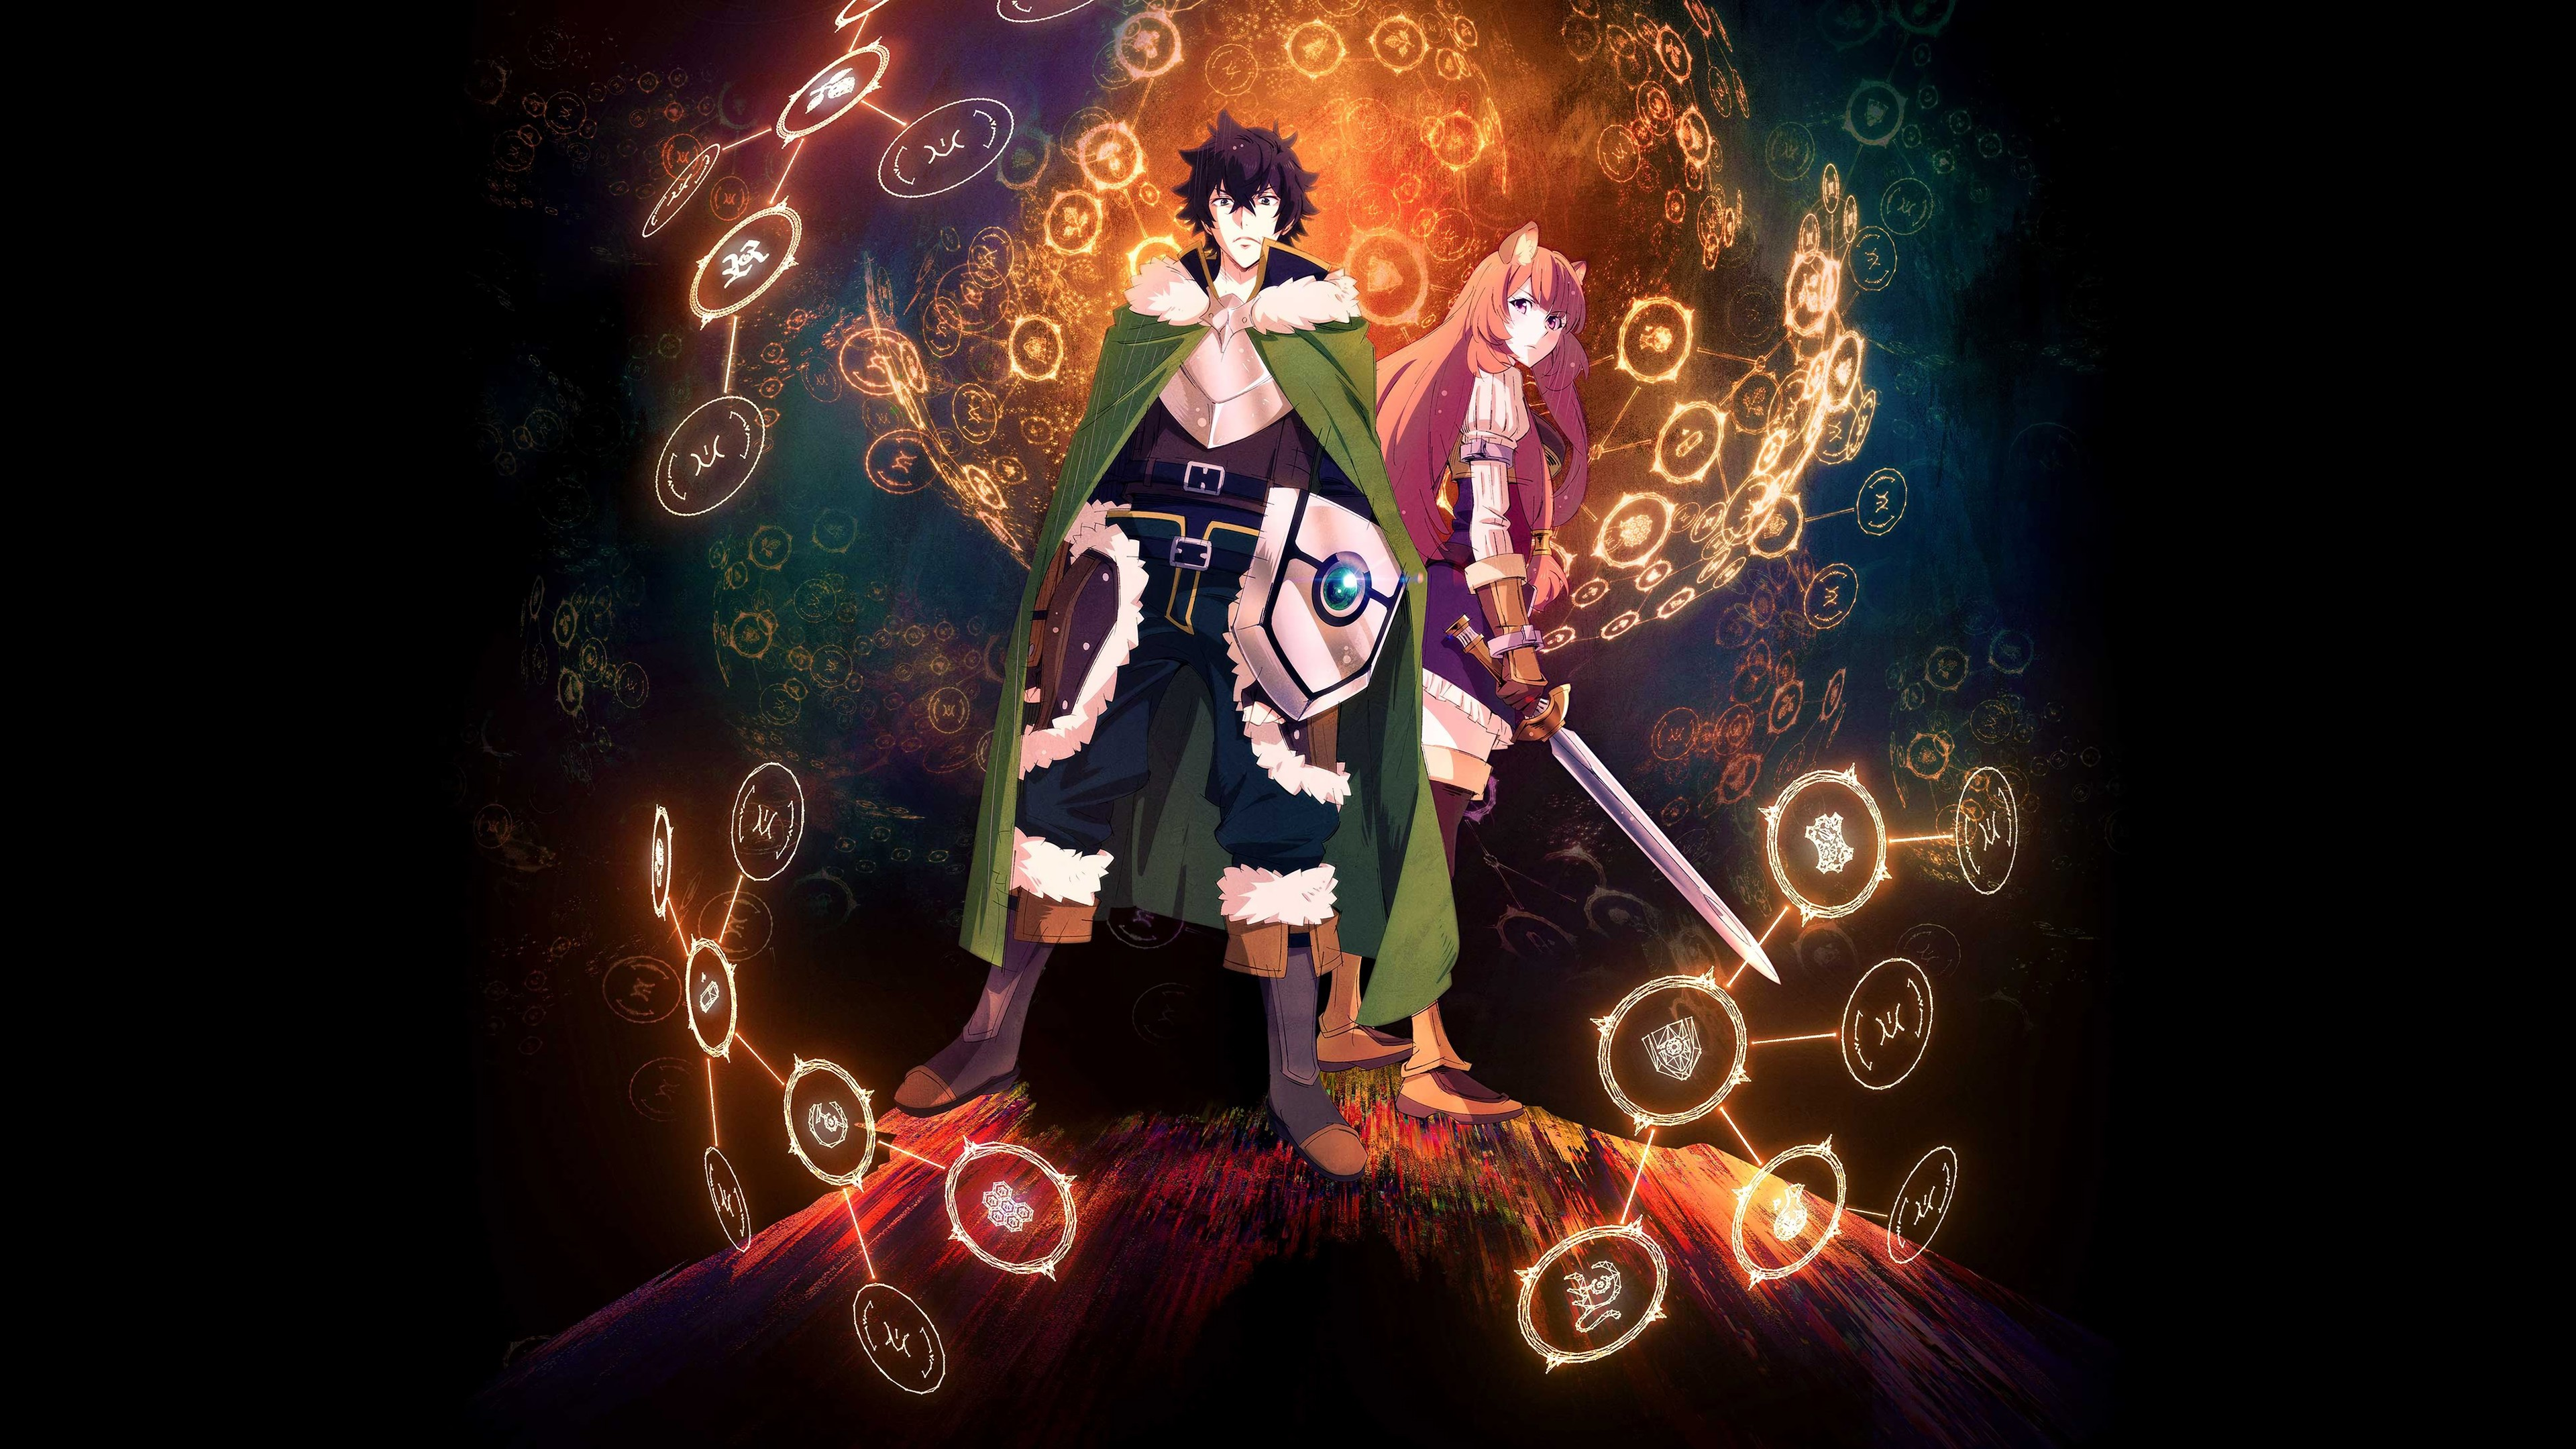 23 raphtalia the rising of the shield hero hd wallpapers background images wallpaper abyss - The rising of the shield hero raphtalia ...